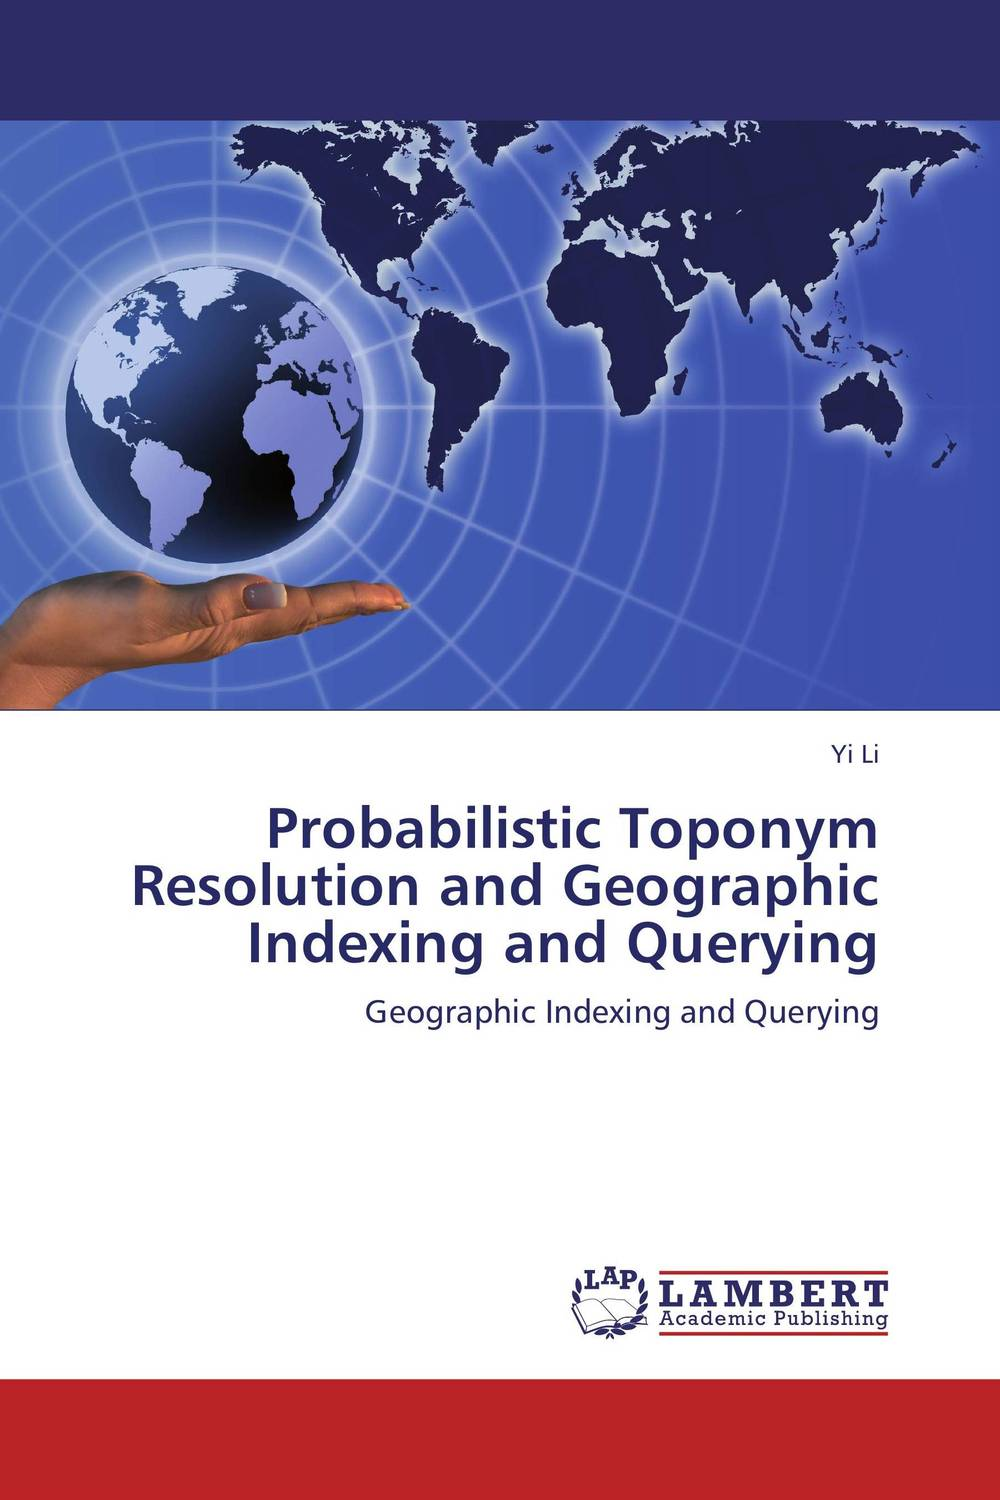 Probabilistic Toponym Resolution and Geographic Indexing and Querying clustering information entities based on statistical methods